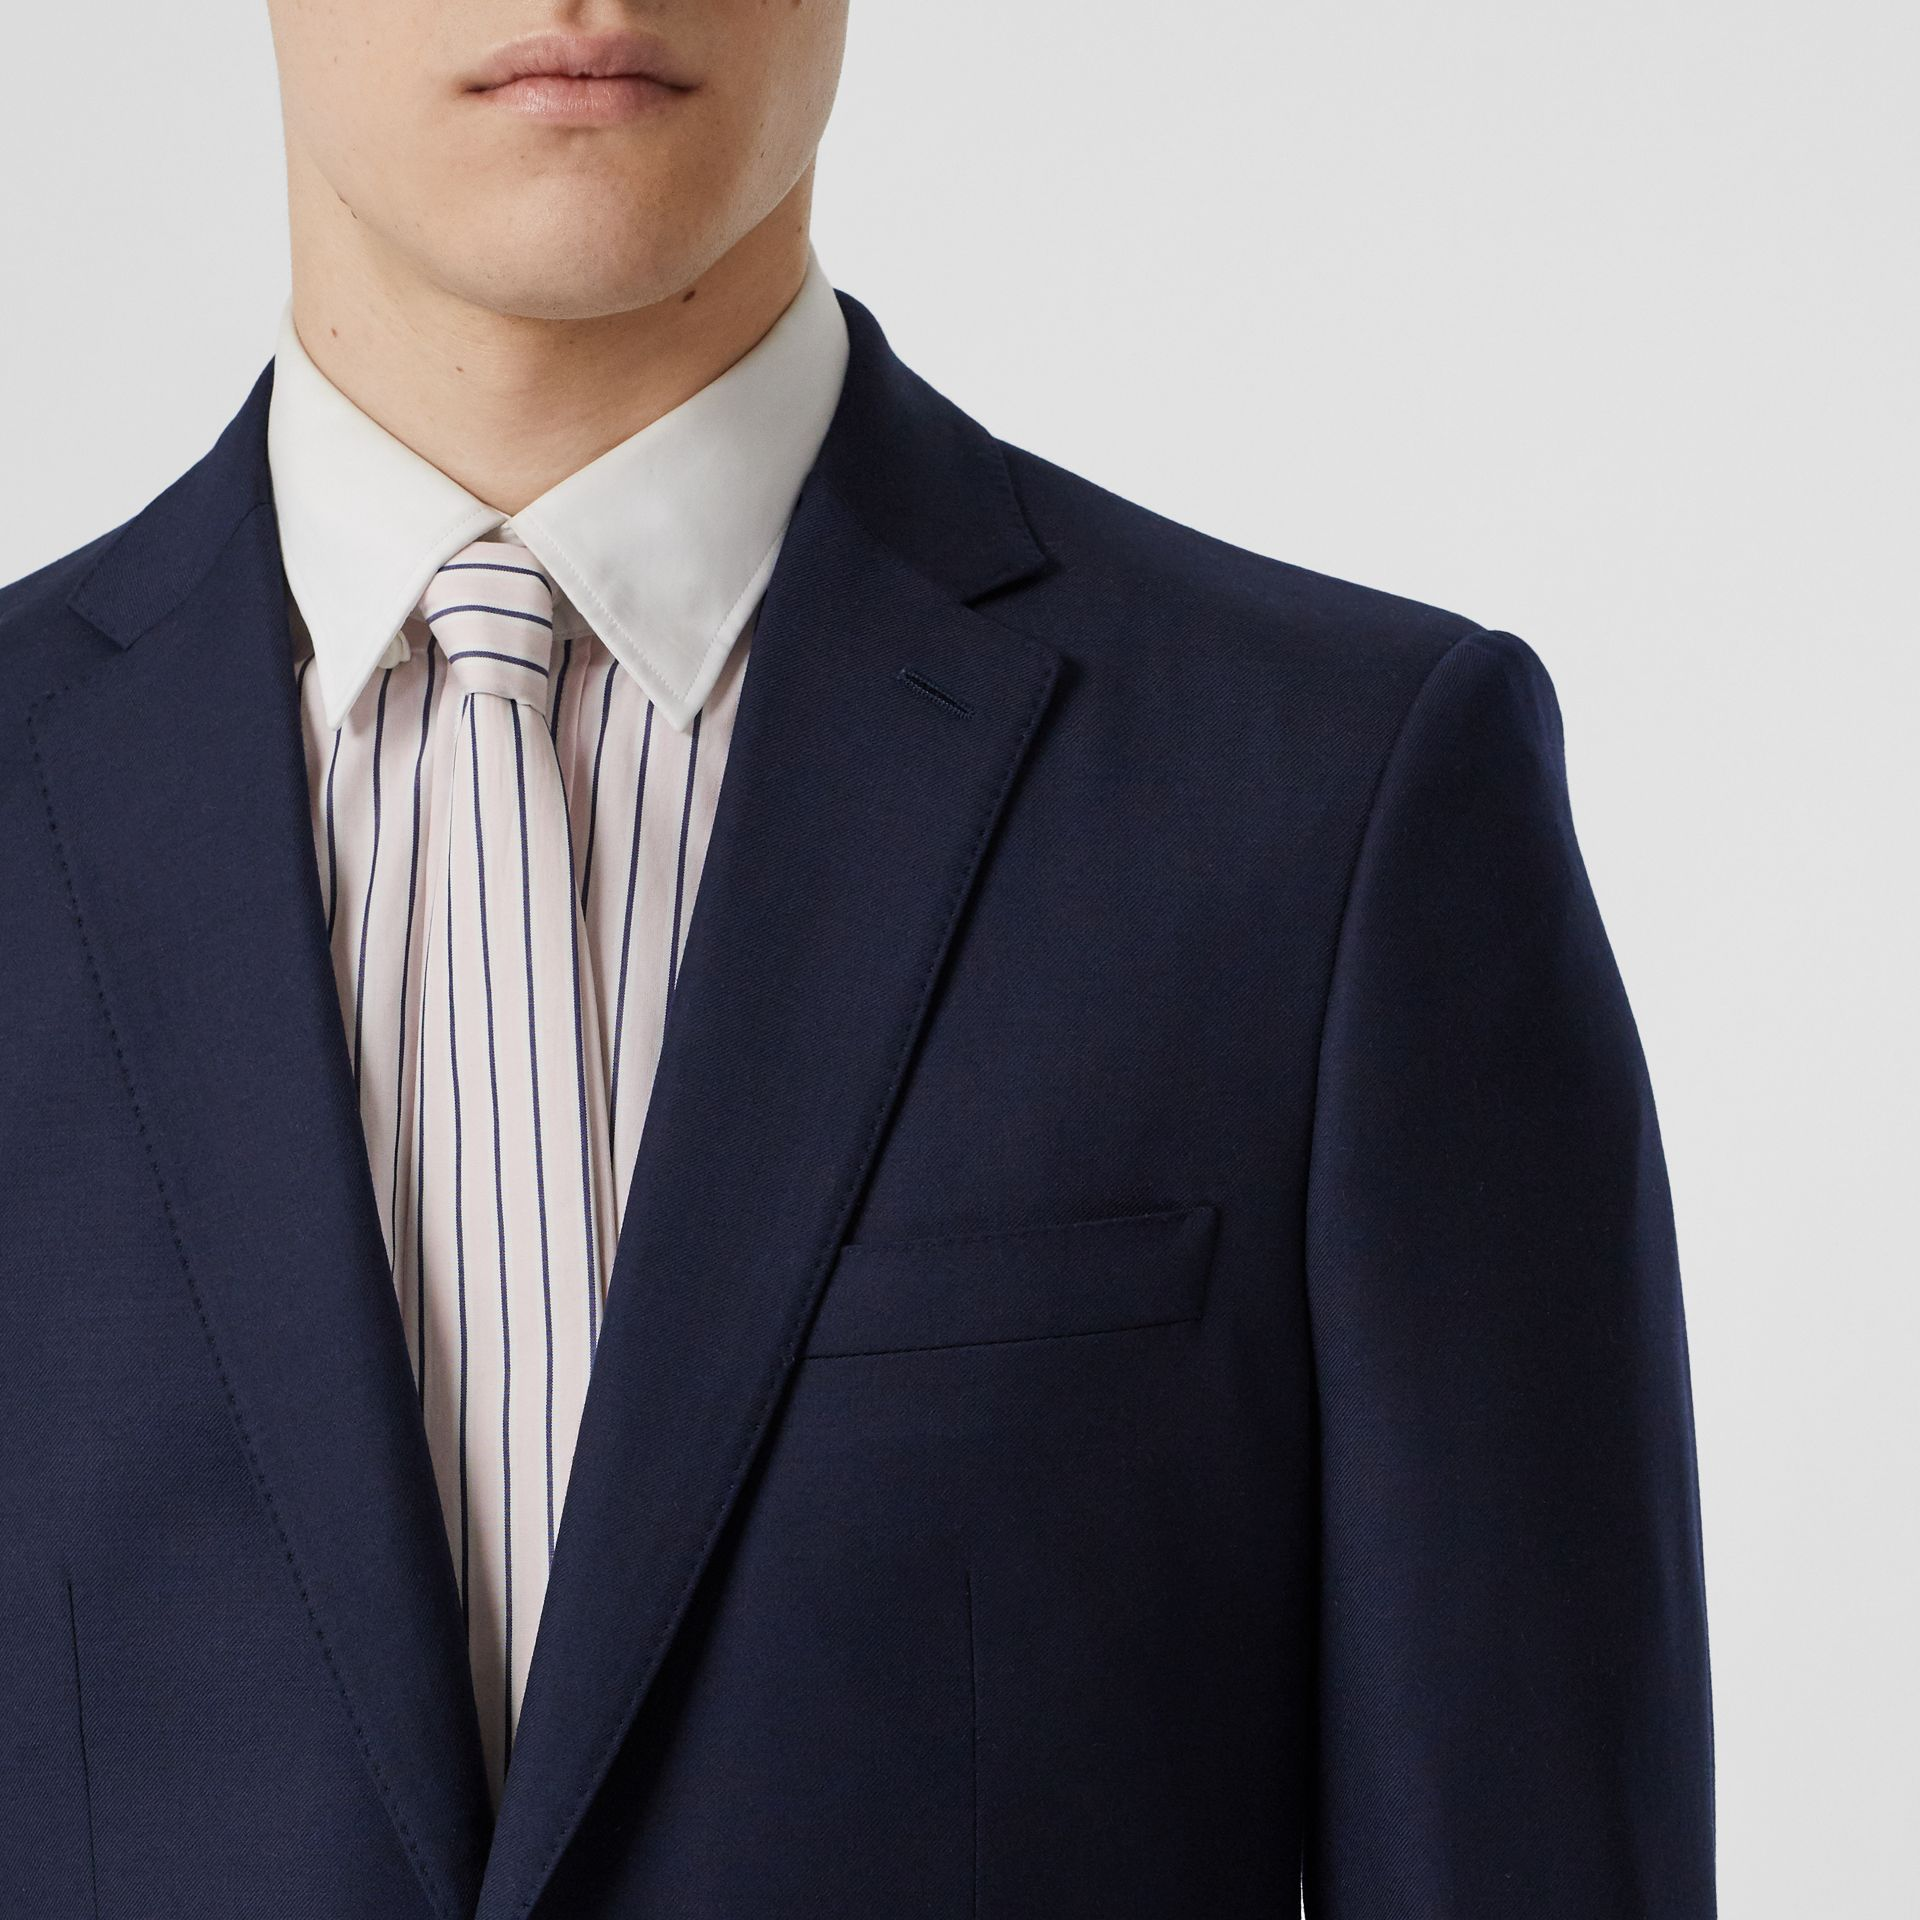 Classic Fit Wool Suit in Navy - Men | Burberry United States - gallery image 1